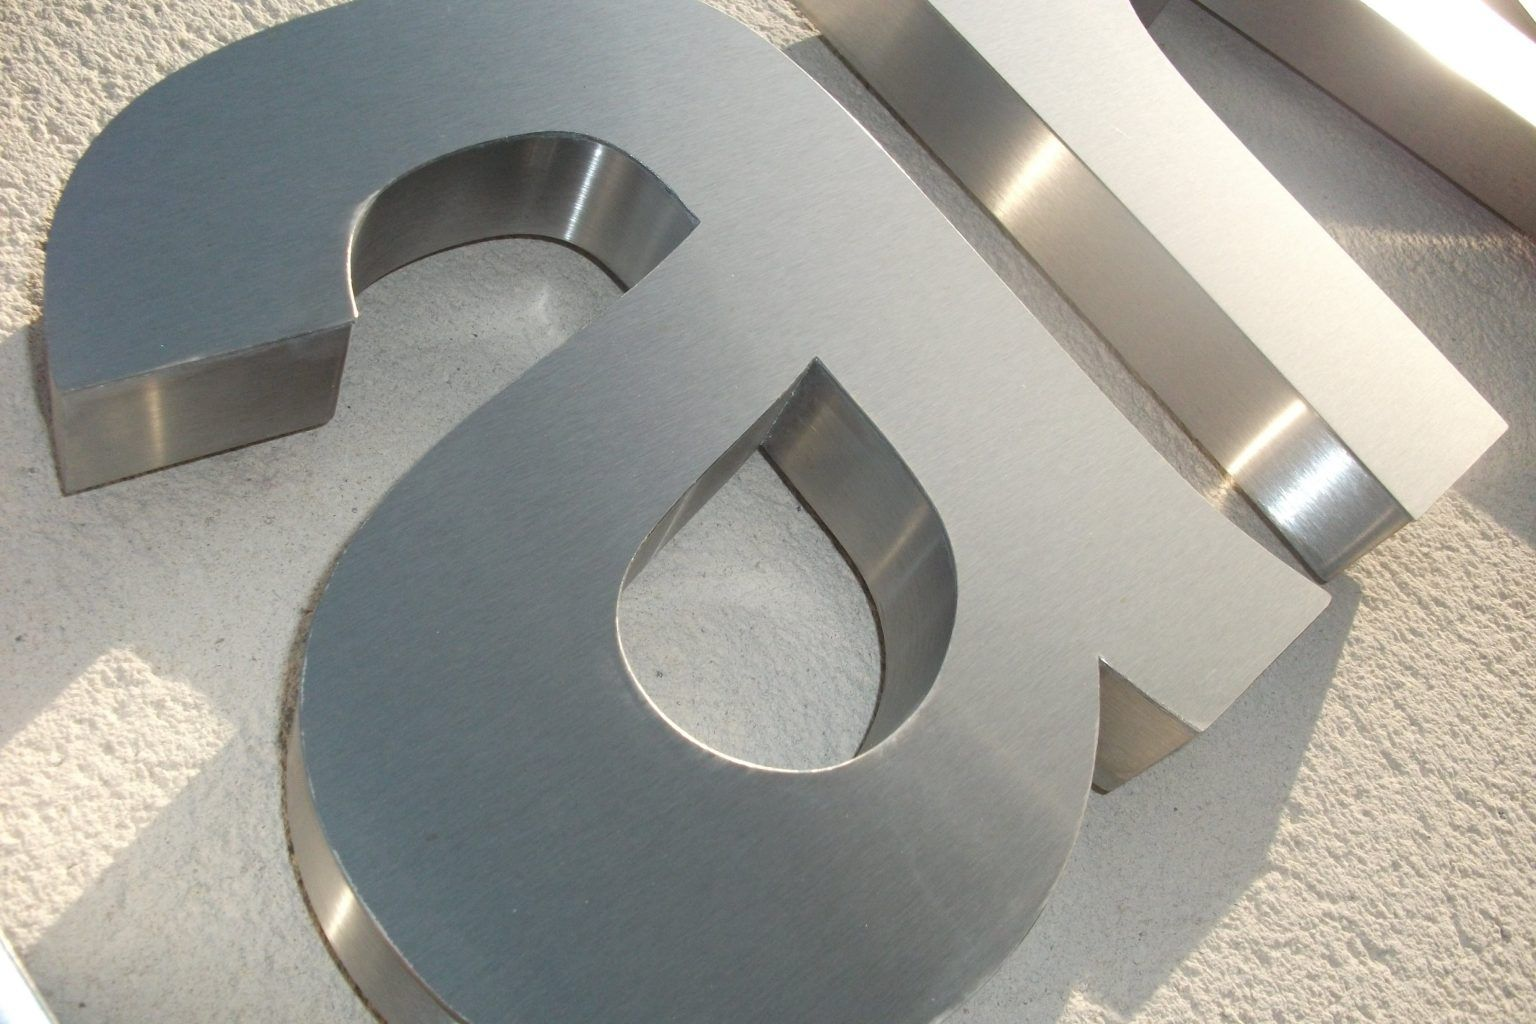 Built up school stainless steel letters